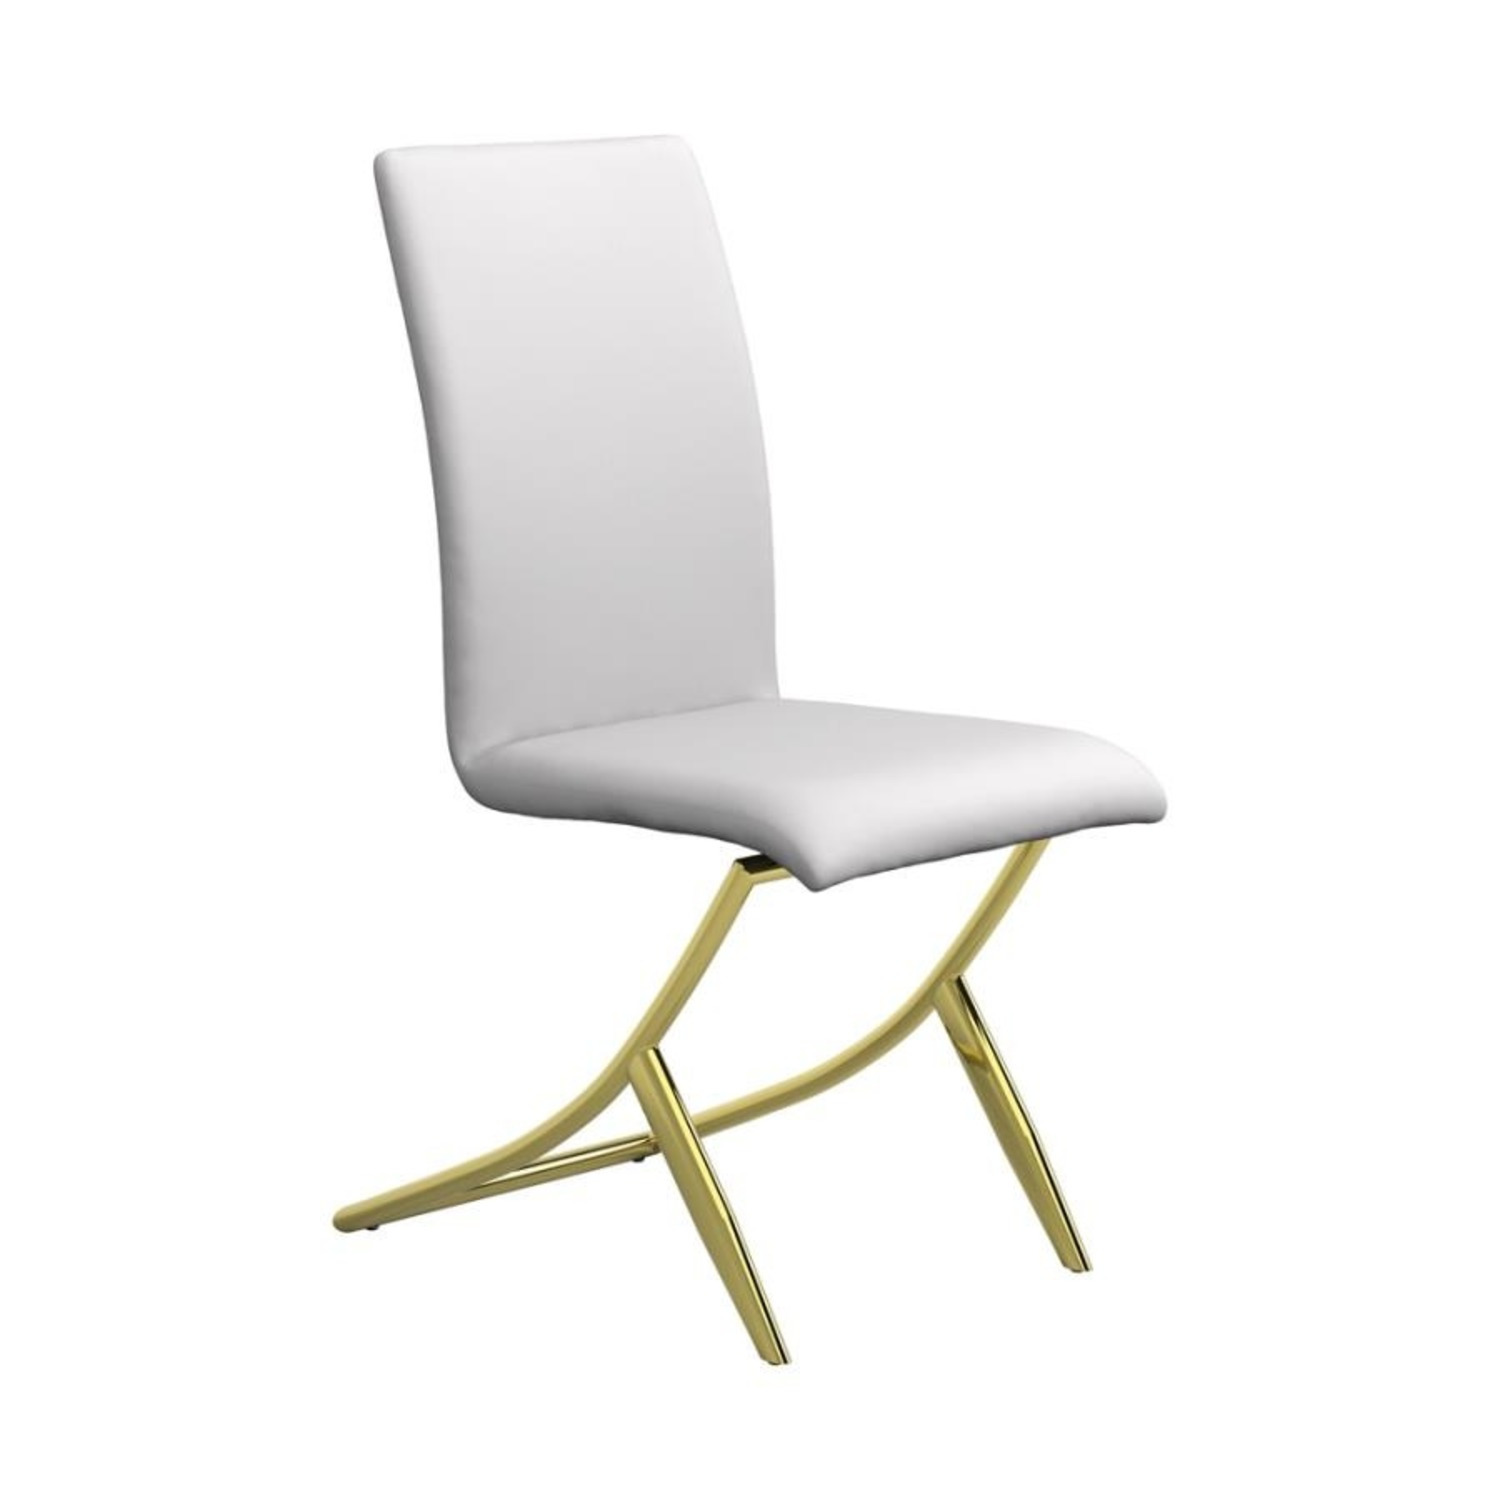 Side Chair In White W/ Crisscross Base Design - image-0